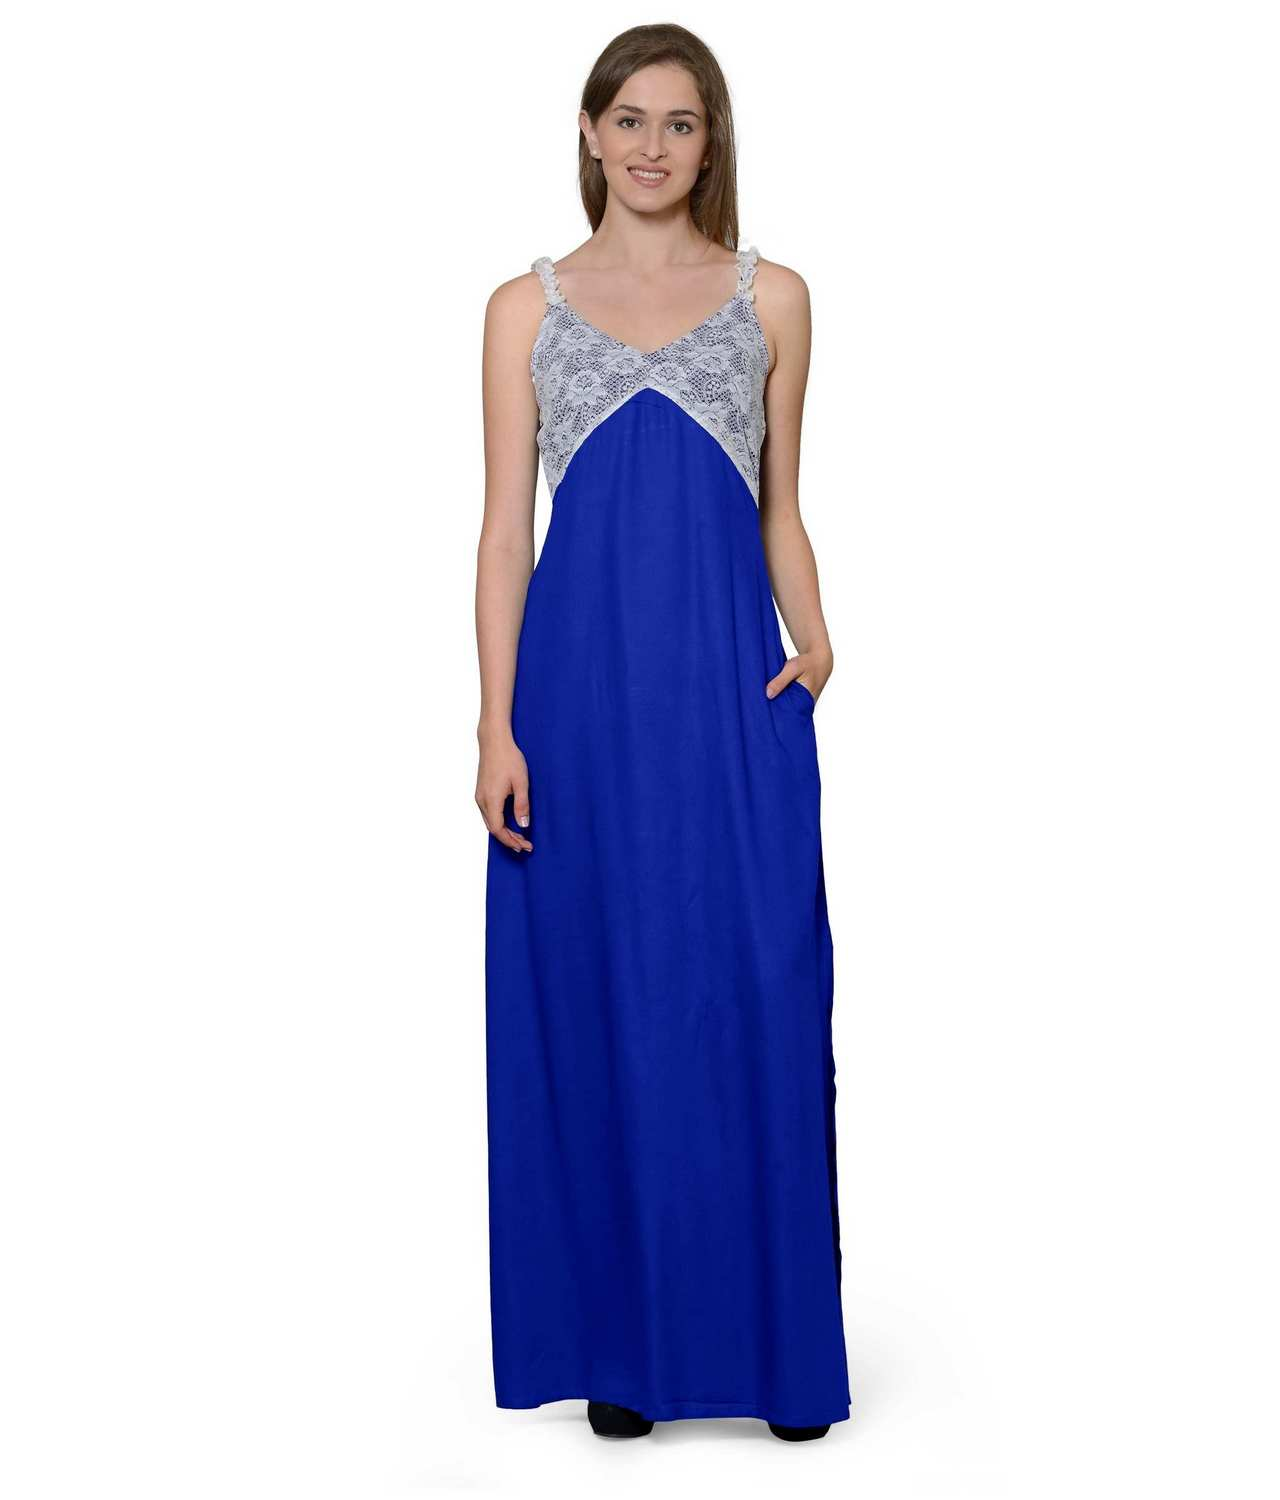 Lace Embellished Empire Maxi Gown Dress in White:Royal Blue